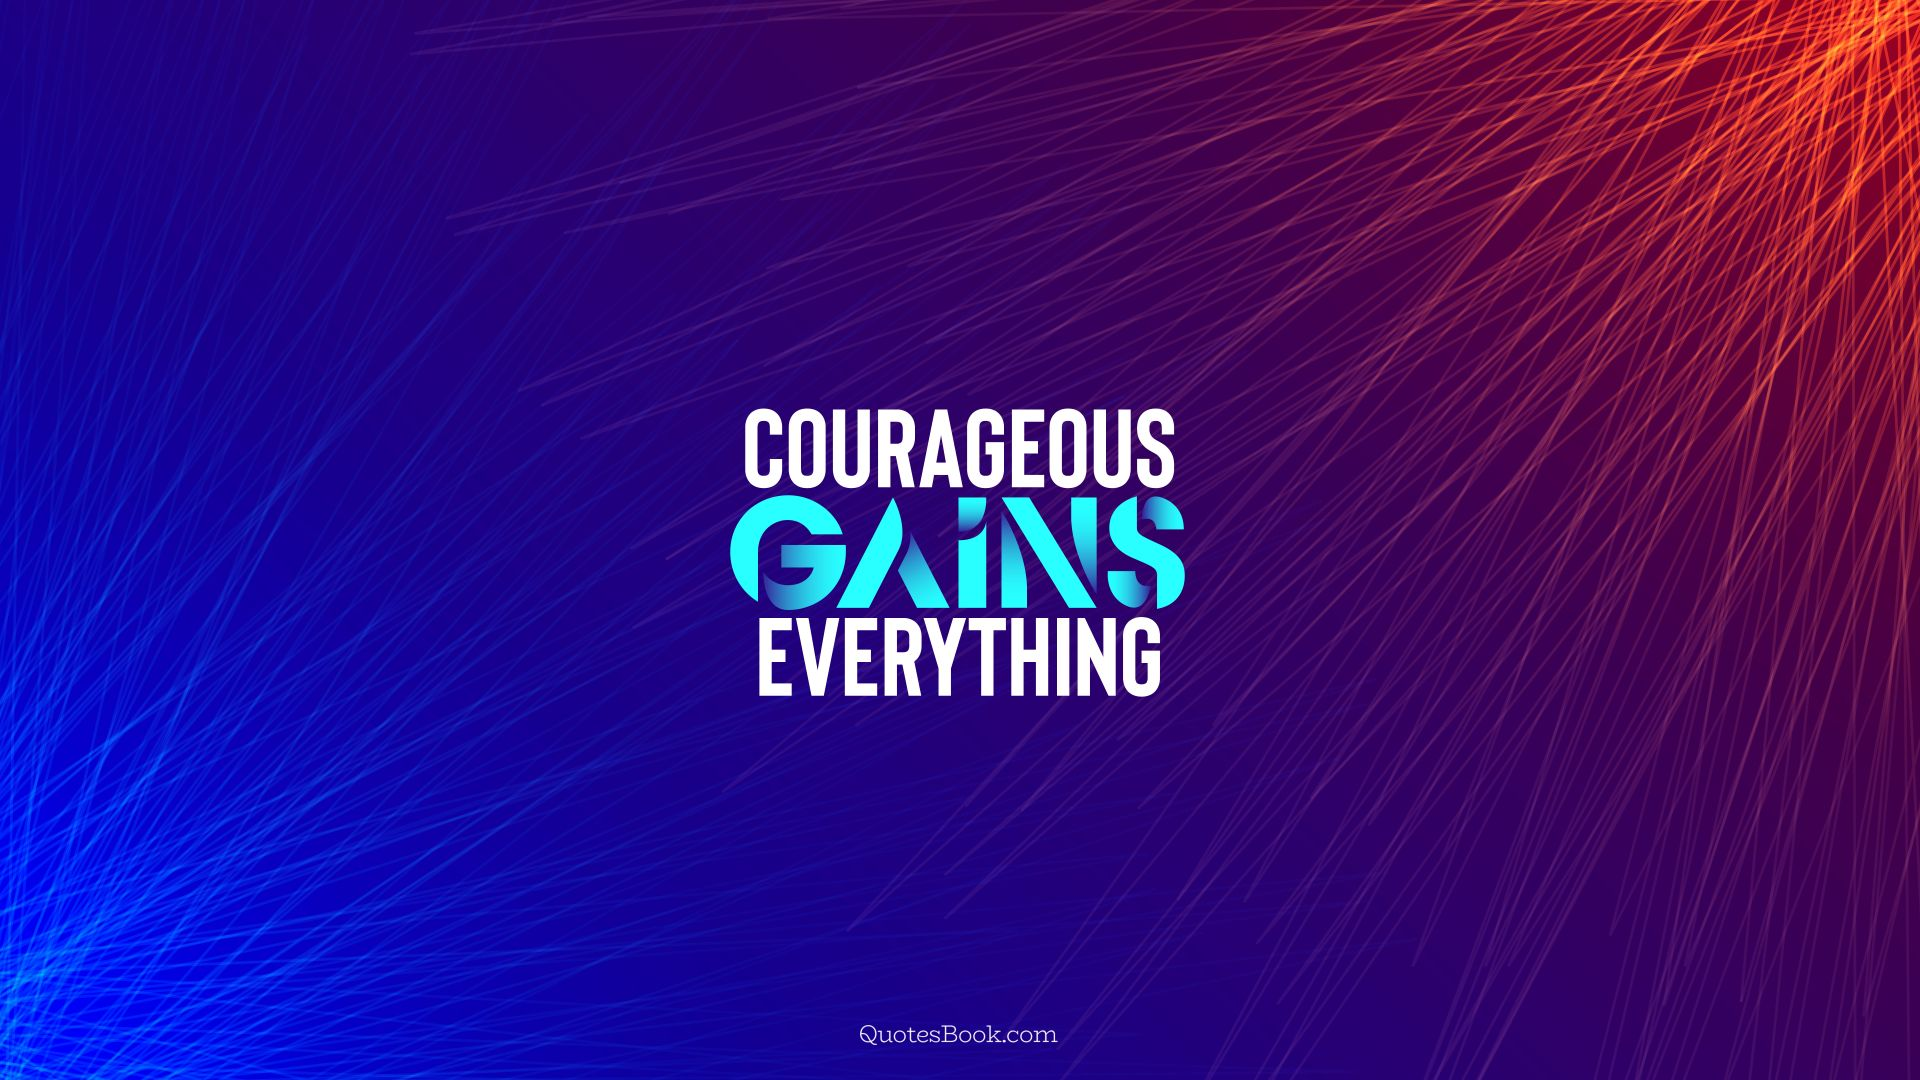 Courageous gains everything